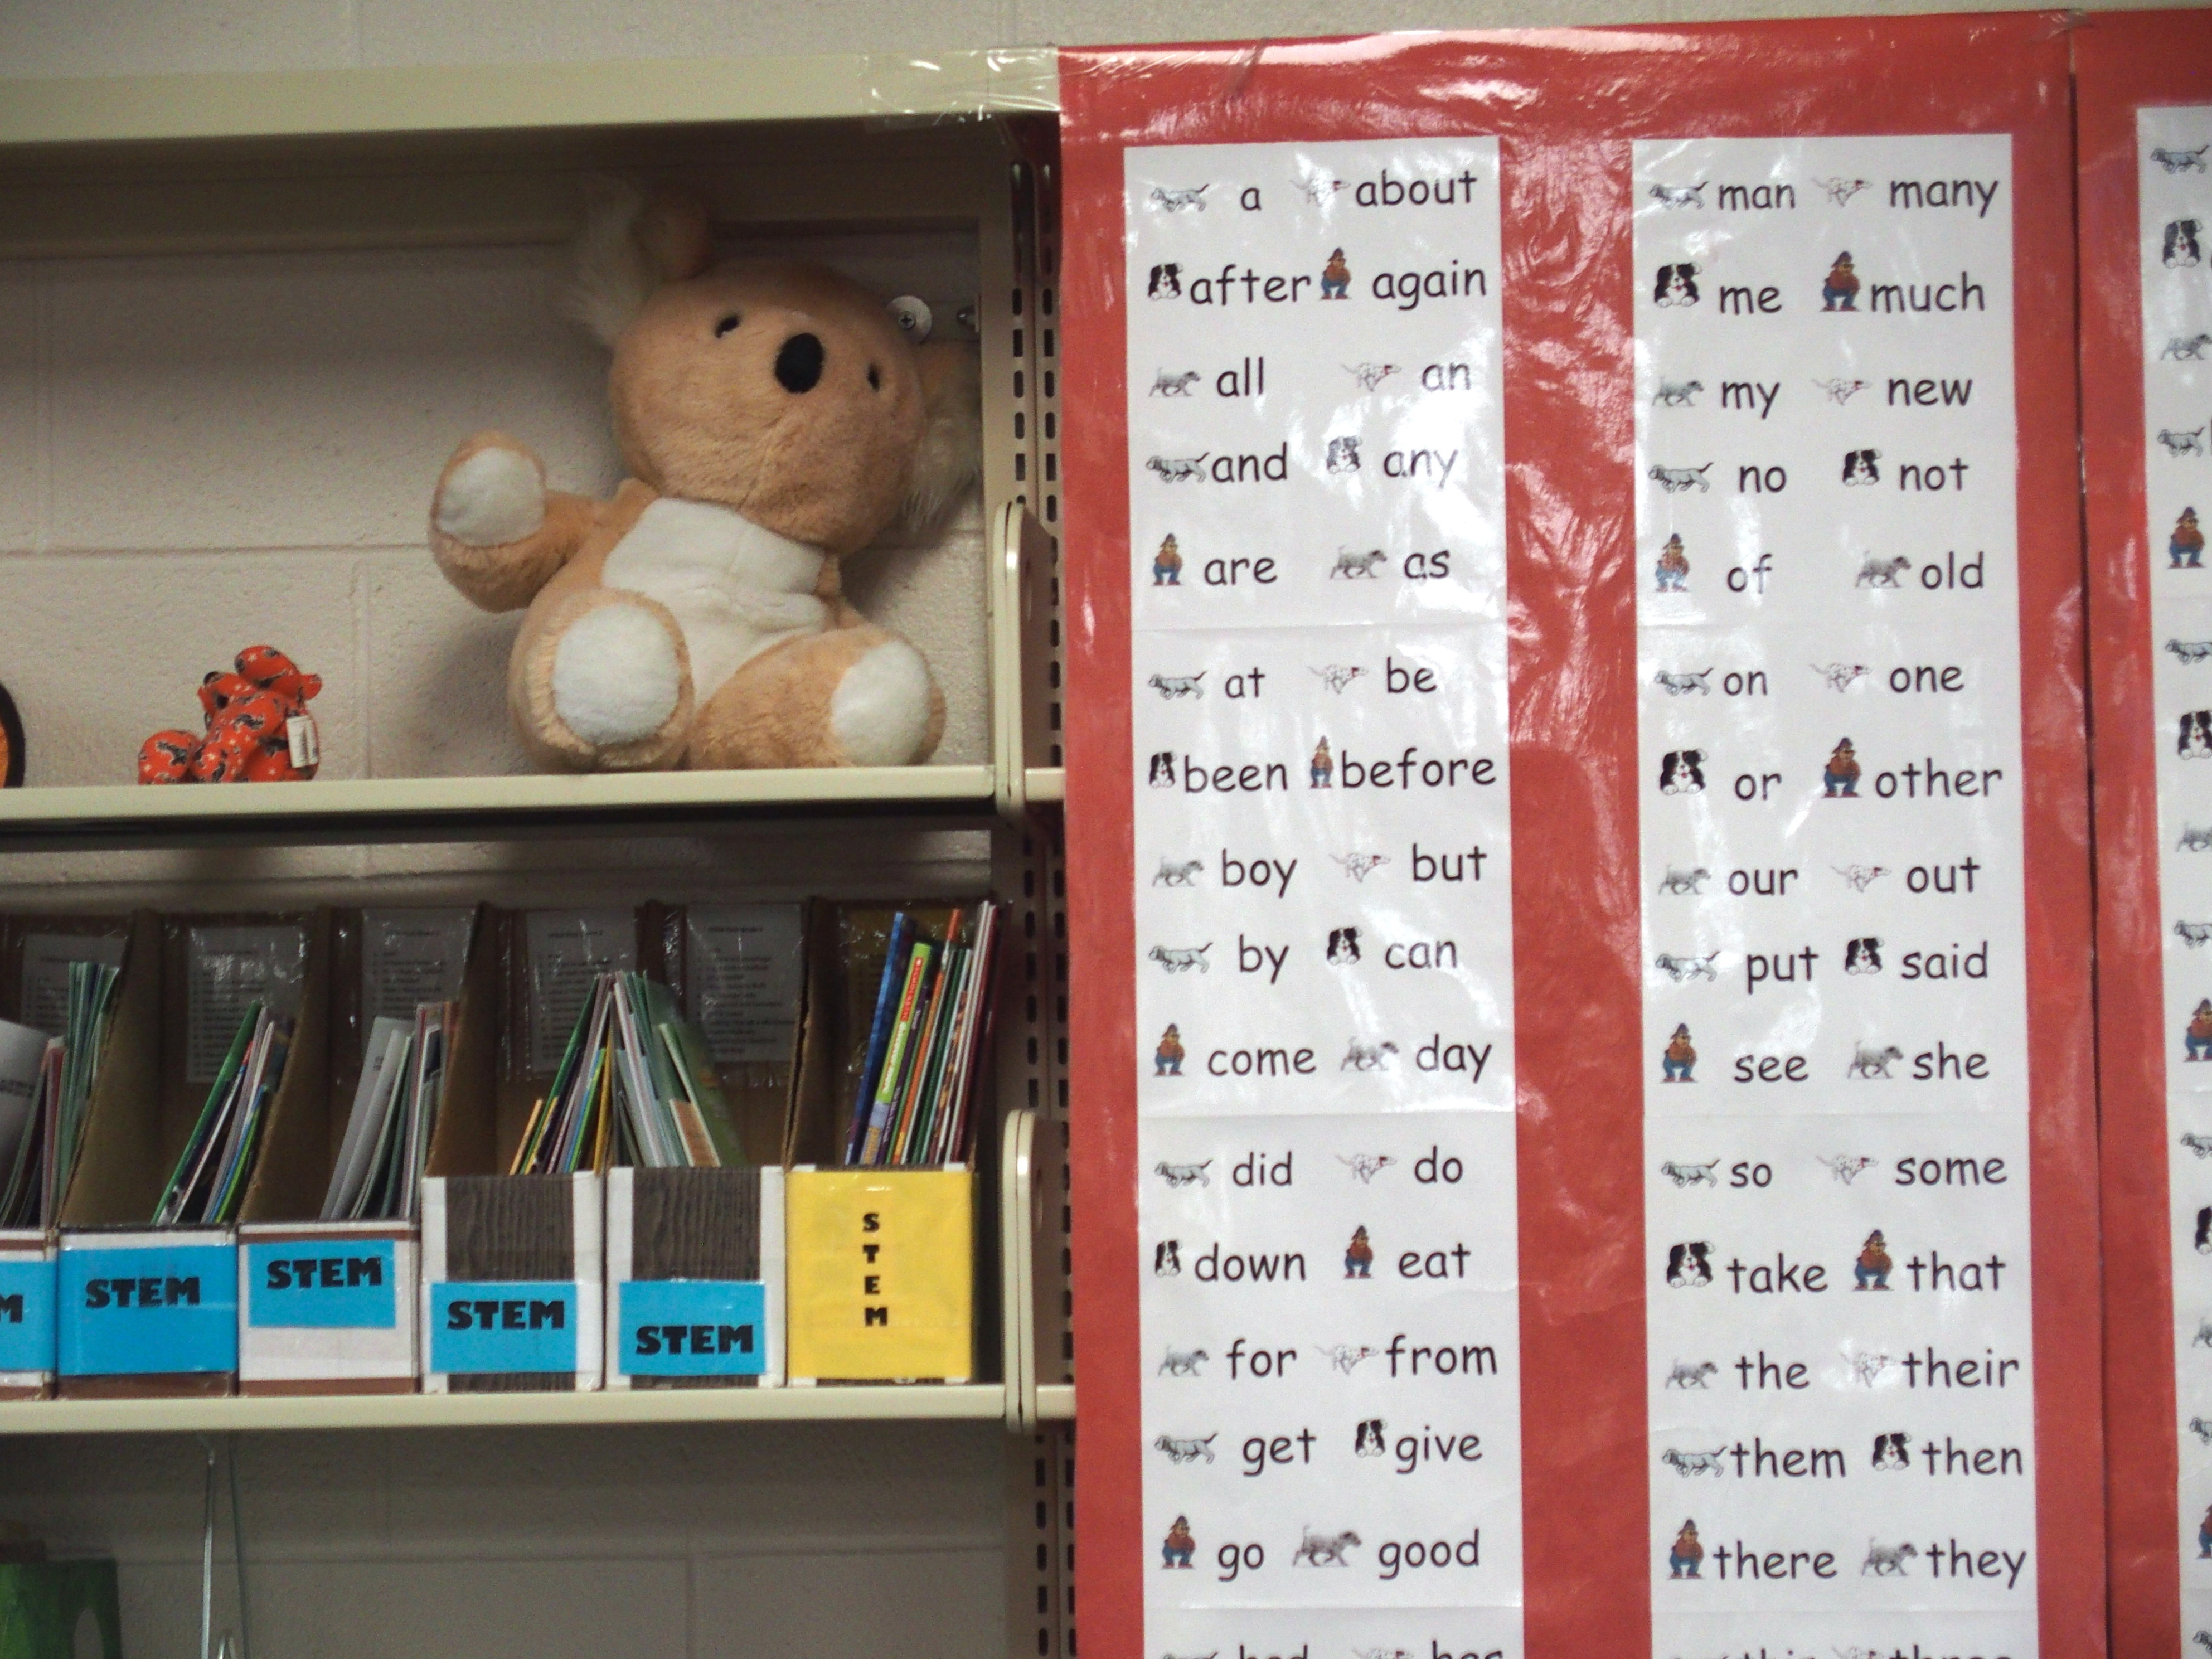 Word chart in a school library. The shelf also has science resources and a stuffed koala bear